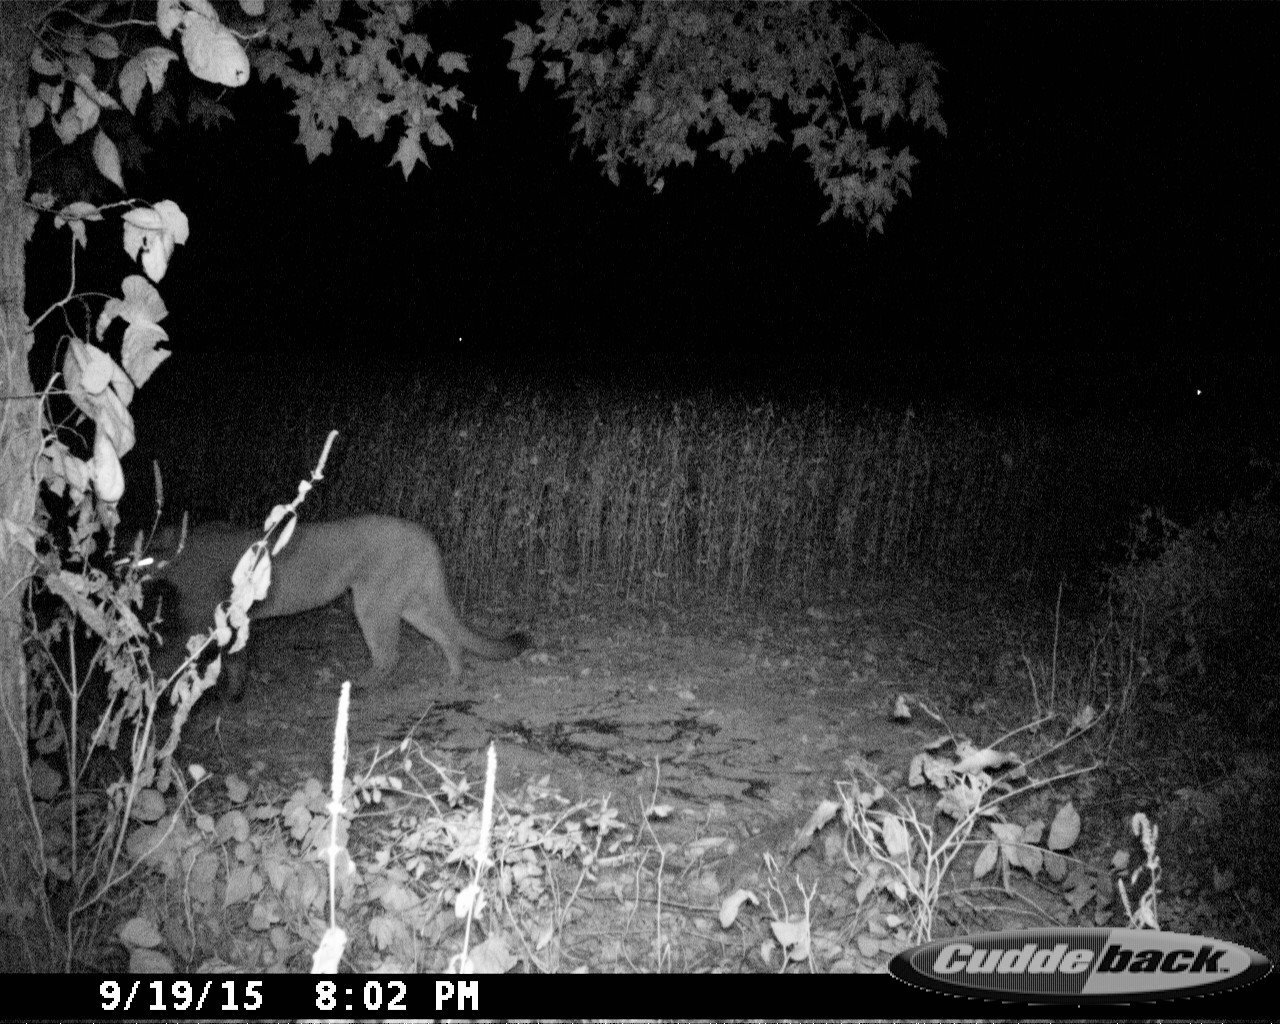 A cougar was photographed in September in Obion County, Tenn. (Photo via the Tennessee Wildlife Resources Agency - Statewide Facebook page)